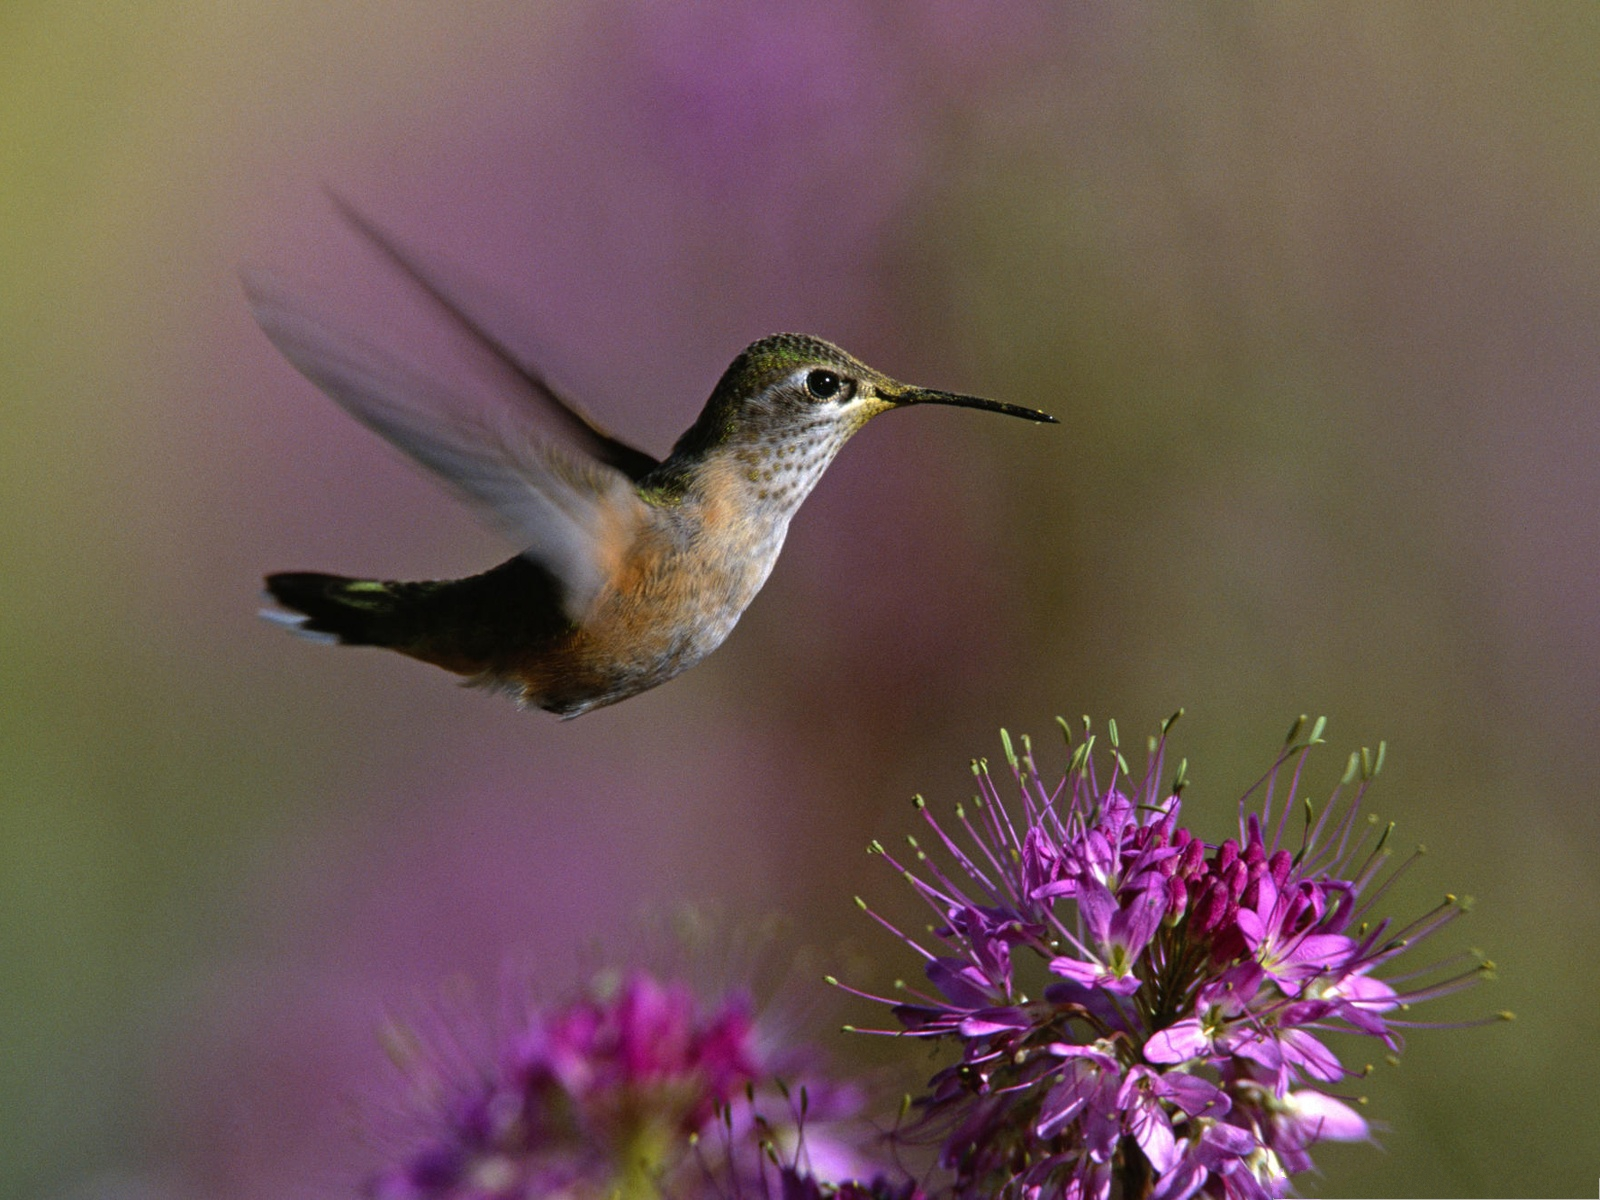 click to free download the wallpaper--Flying Hummingbird Picture, Little Bird Flying Toward the Blooming Flowers 1600X1200 free wallpaper download